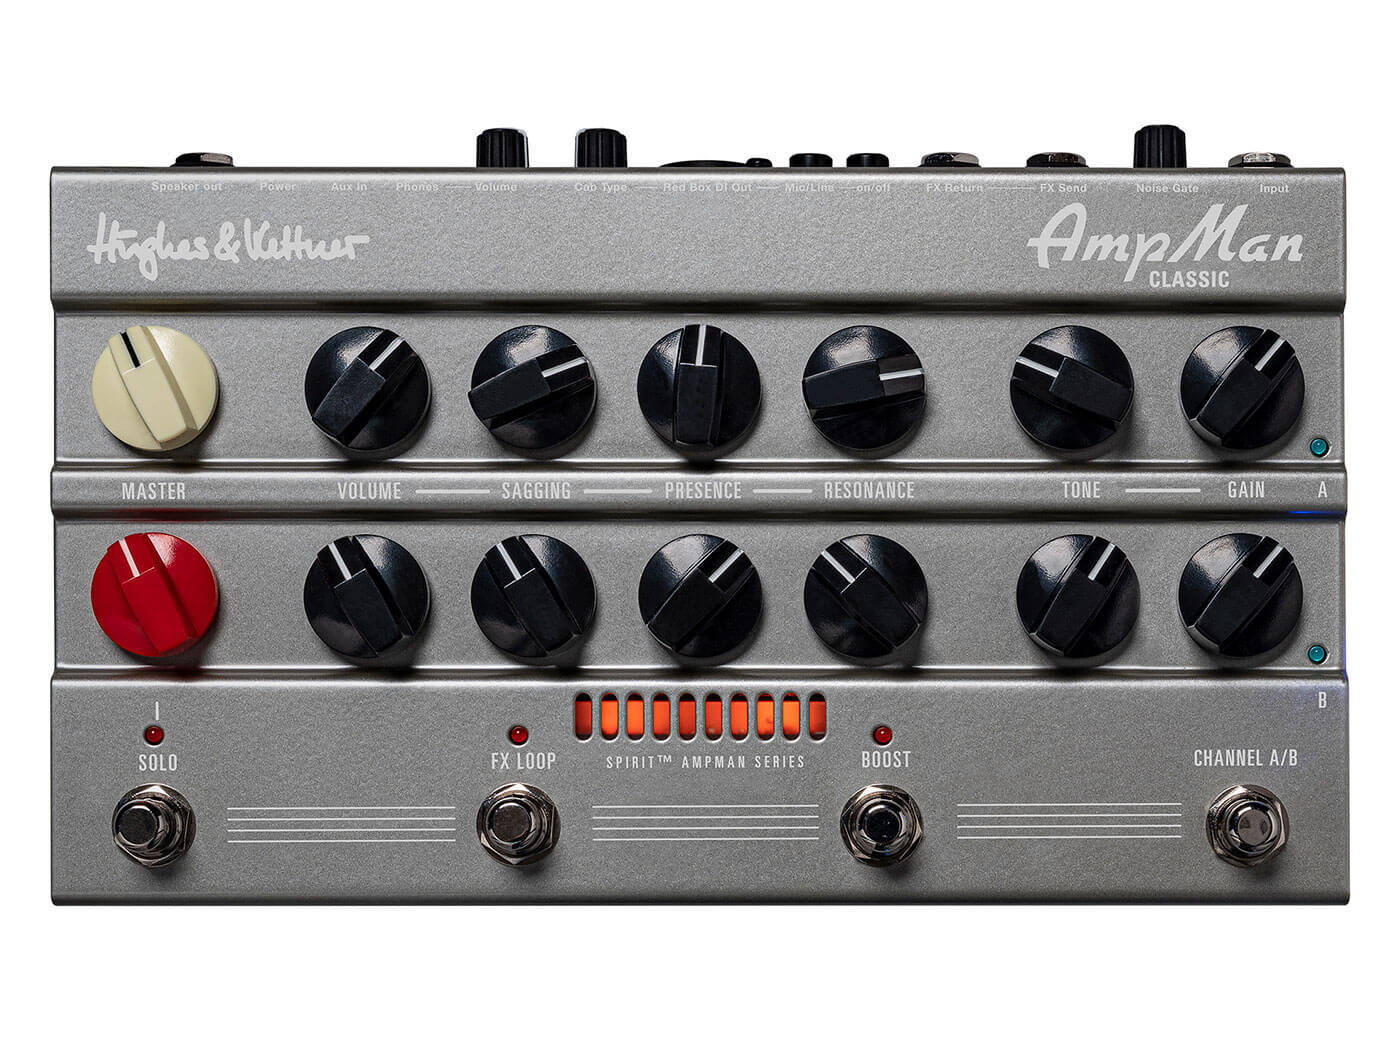 Hughes and Kettner's AmpMan Classic